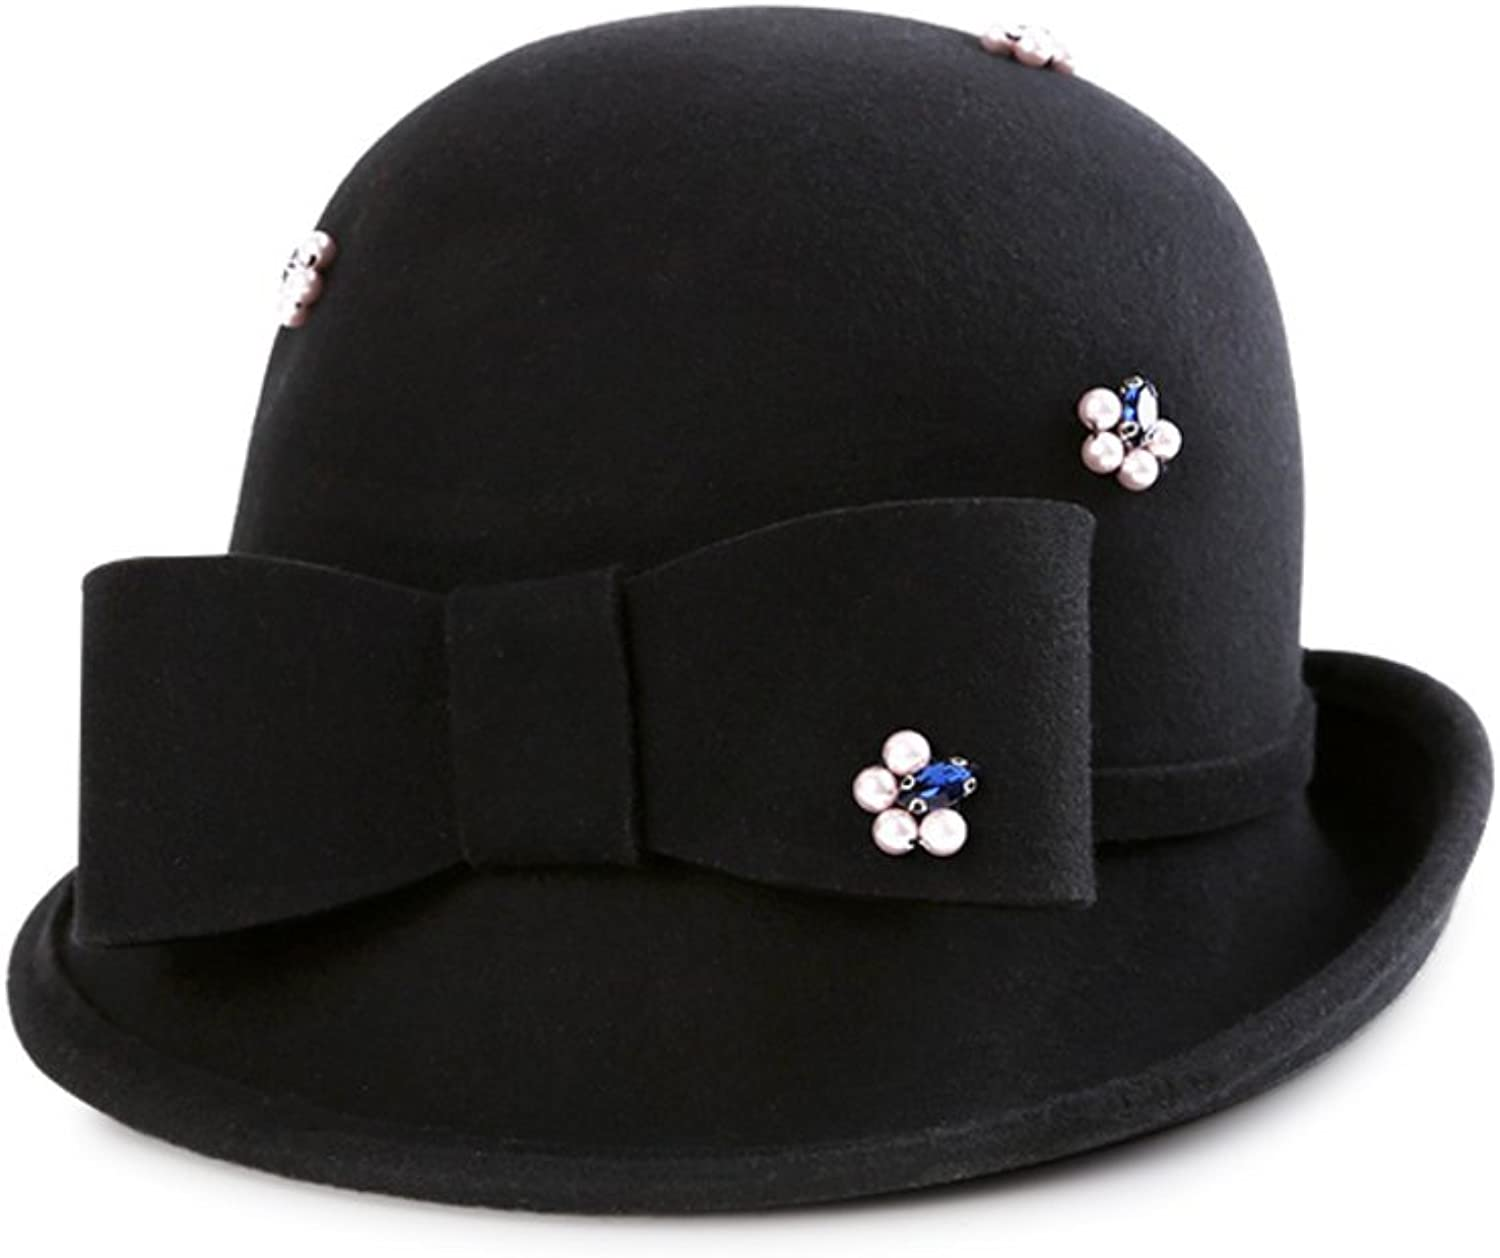 KYWBD Women's Fedora Has,Bowler Hat Basin Has